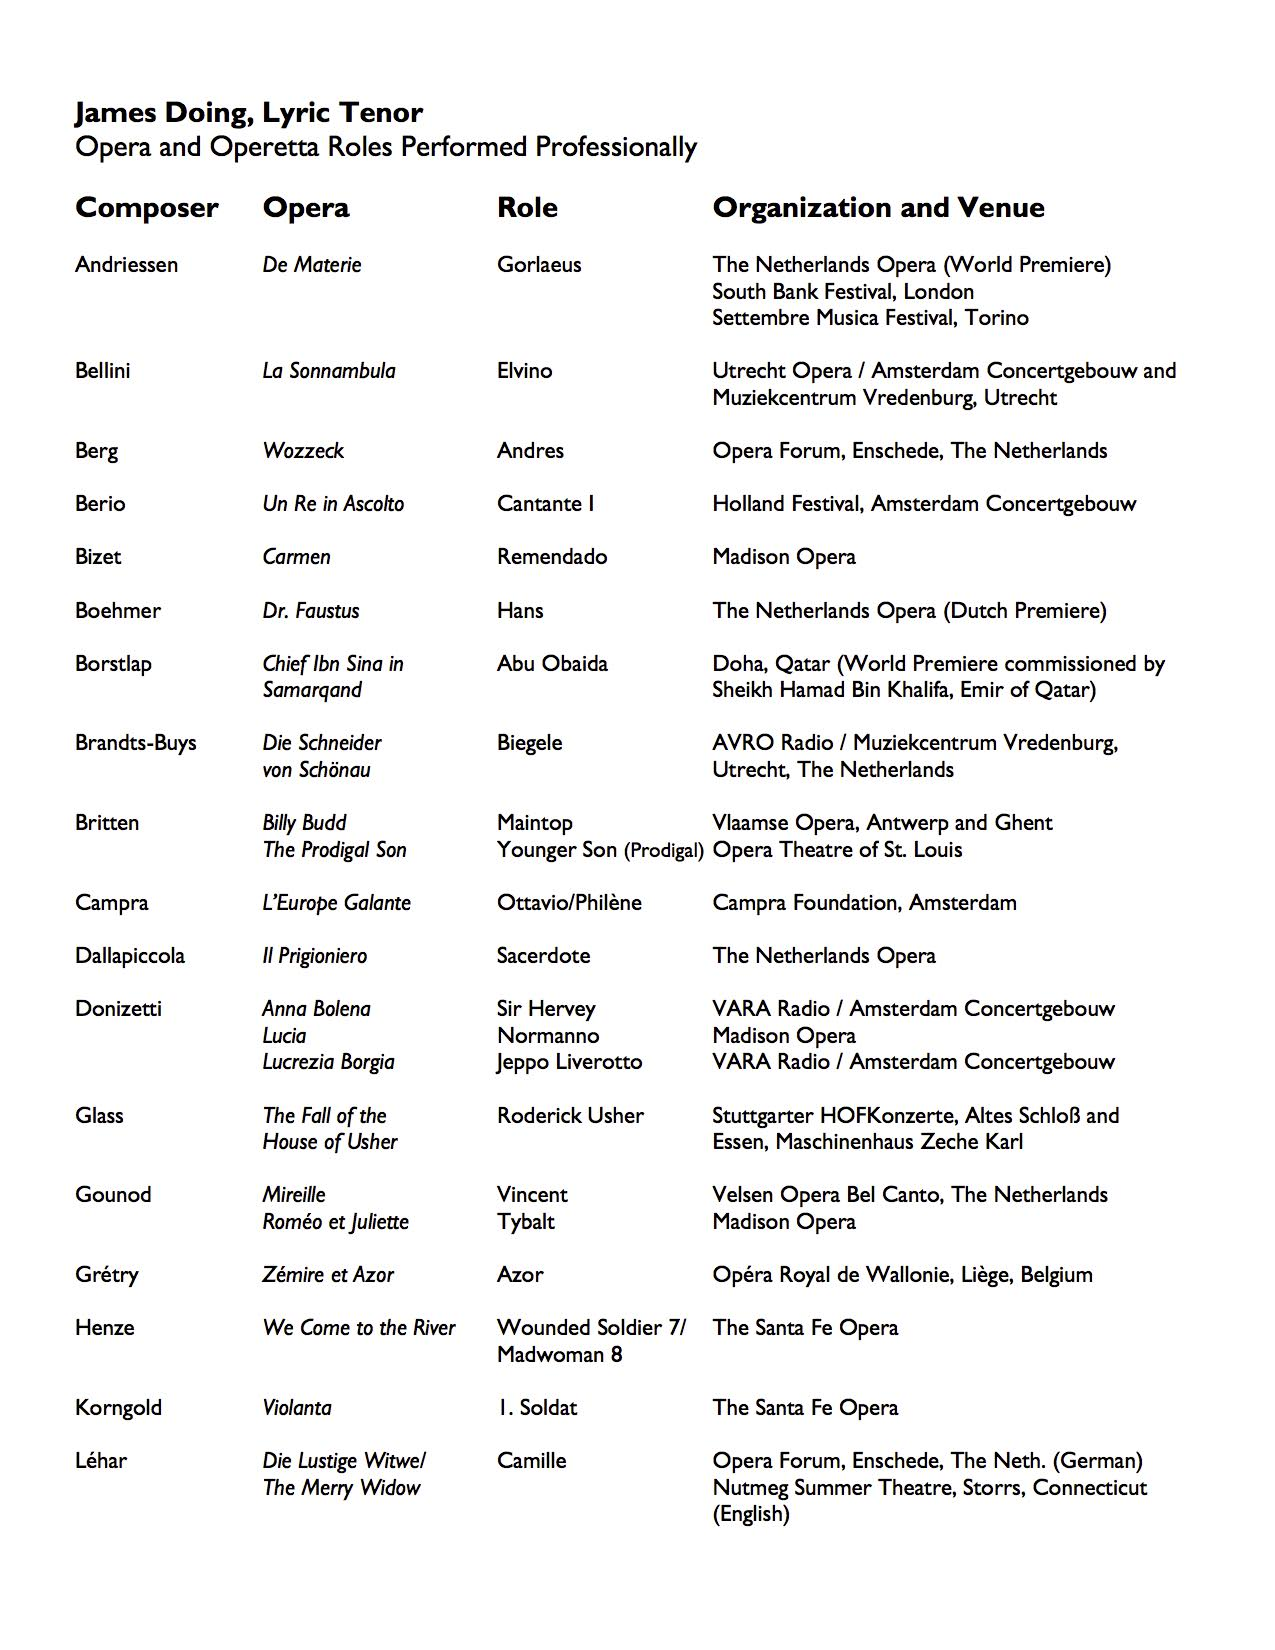 Opera and Operetta Roles Performed Professionally page 1.jpg